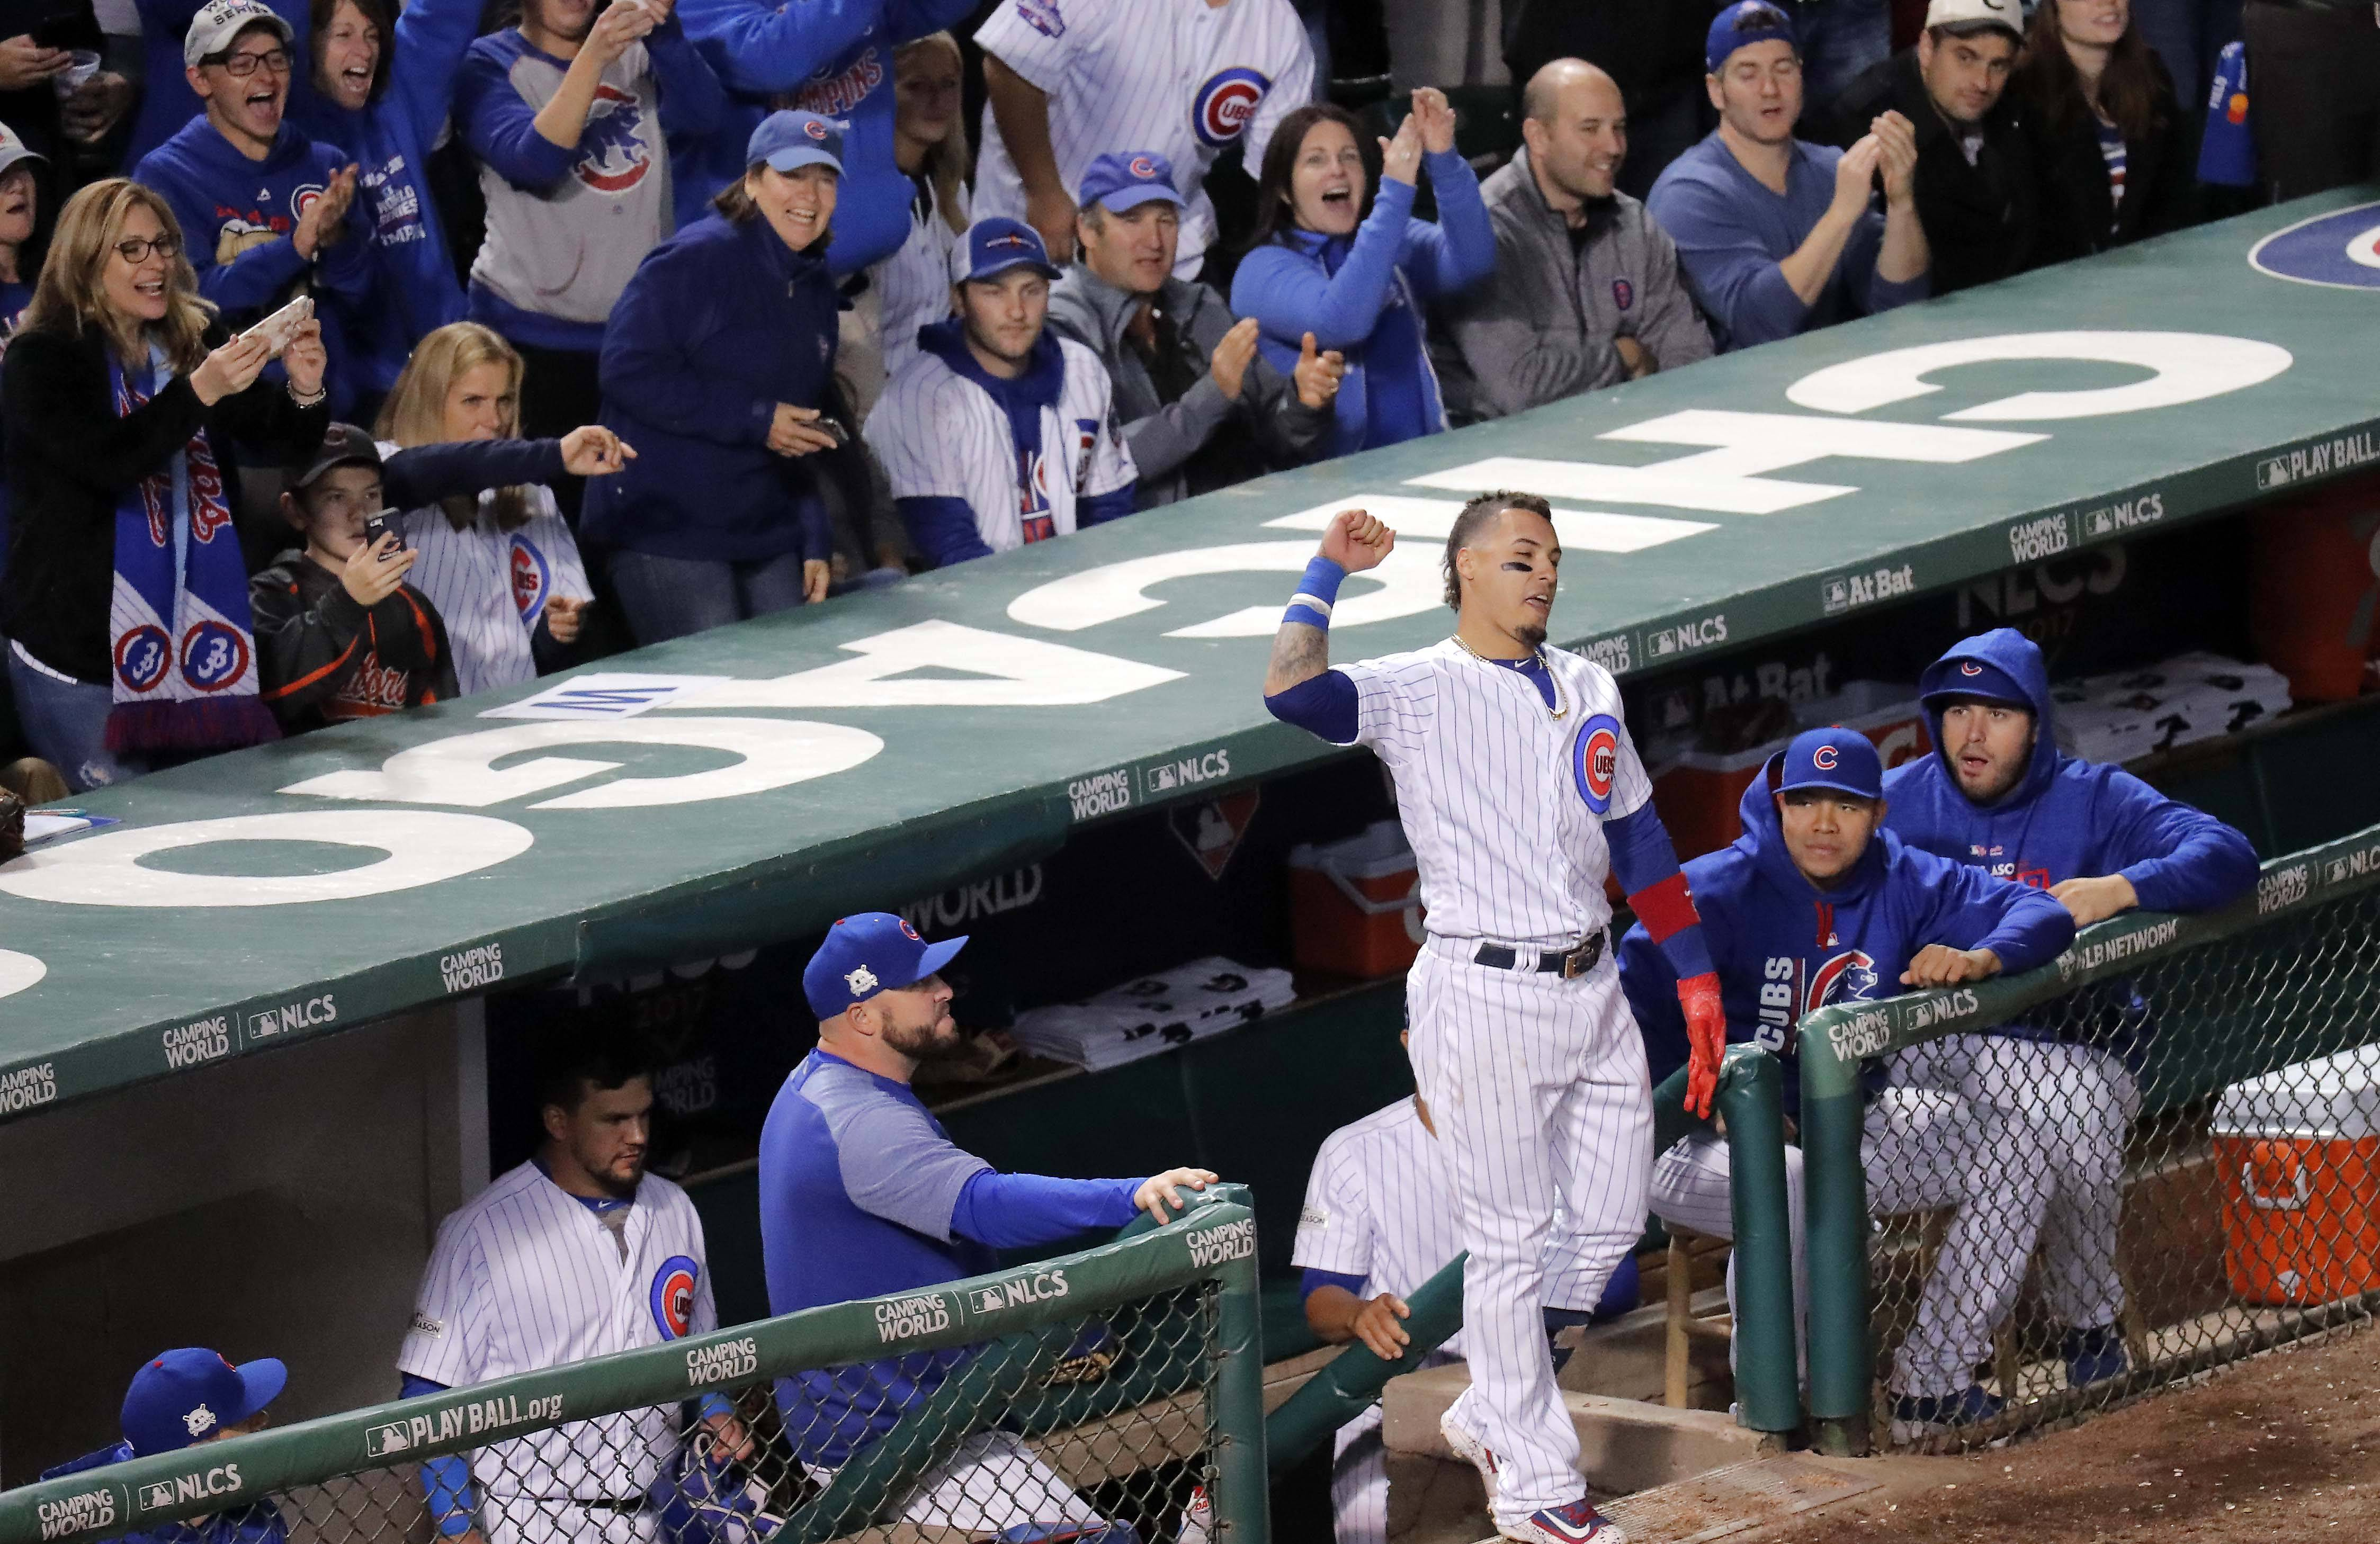 Chicago Cubs second baseman Javier Baez (9) comes out for a curtain call after his home run in the 5th inning during Game 4 of the National League championship series, Oct, 18 2017, at Wrigley Field in Chicago.